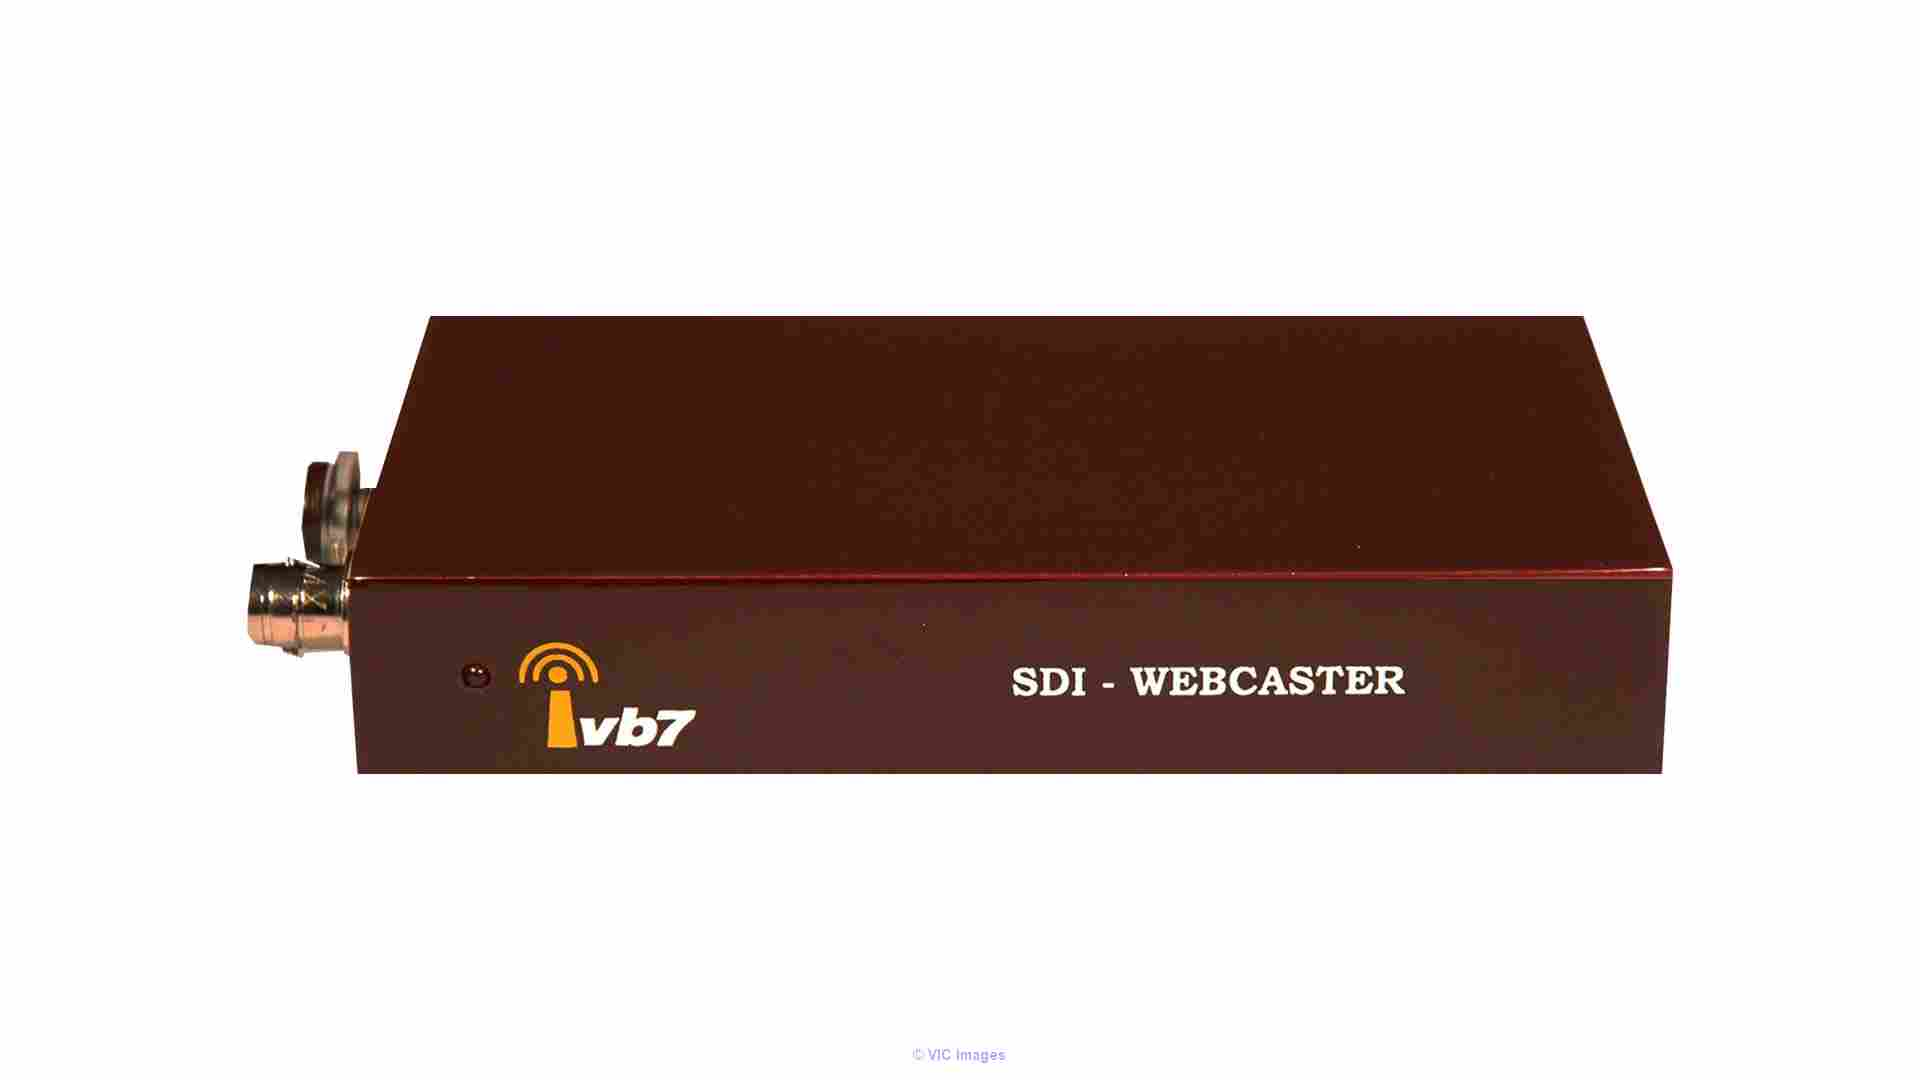 "Professional SDI/AV Webcaster ""NOW WITH SPECIAL OFFERS"" Calgary, Alberta, Canada Annonces Classées"